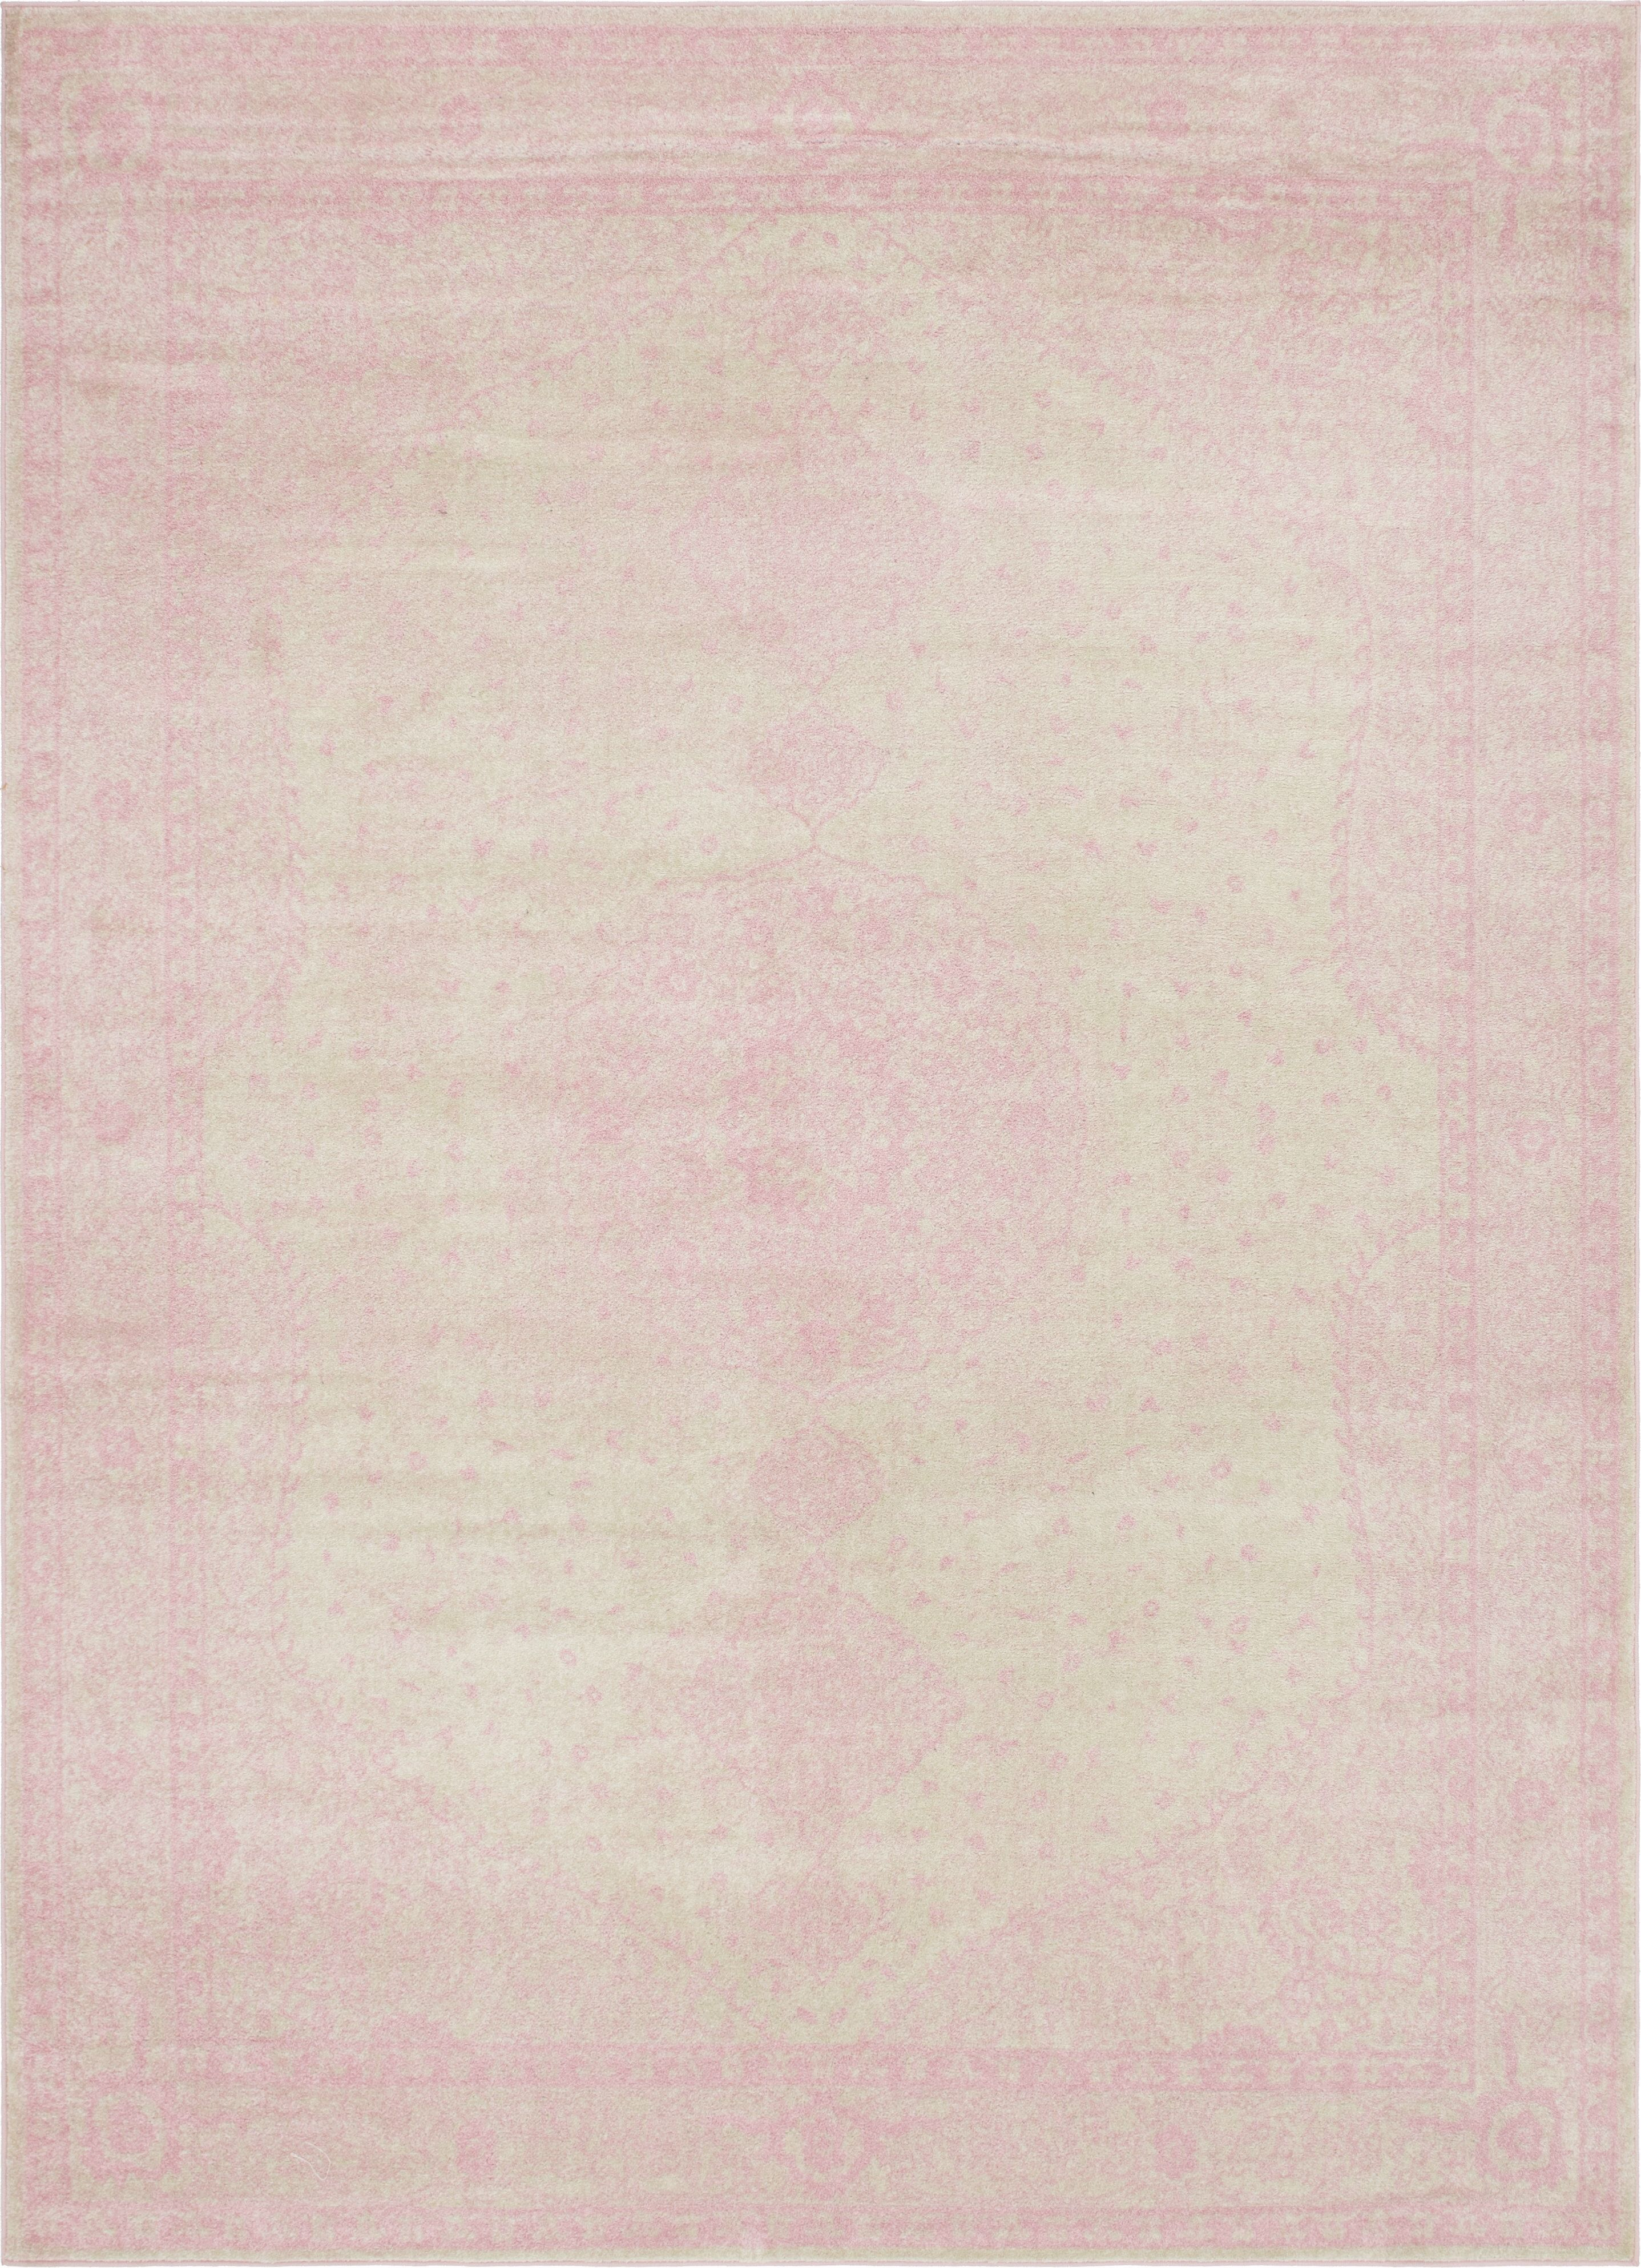 Pat Oriental Pink Area Rug Pink Area Rug Indoor Photography Photography Backdrop